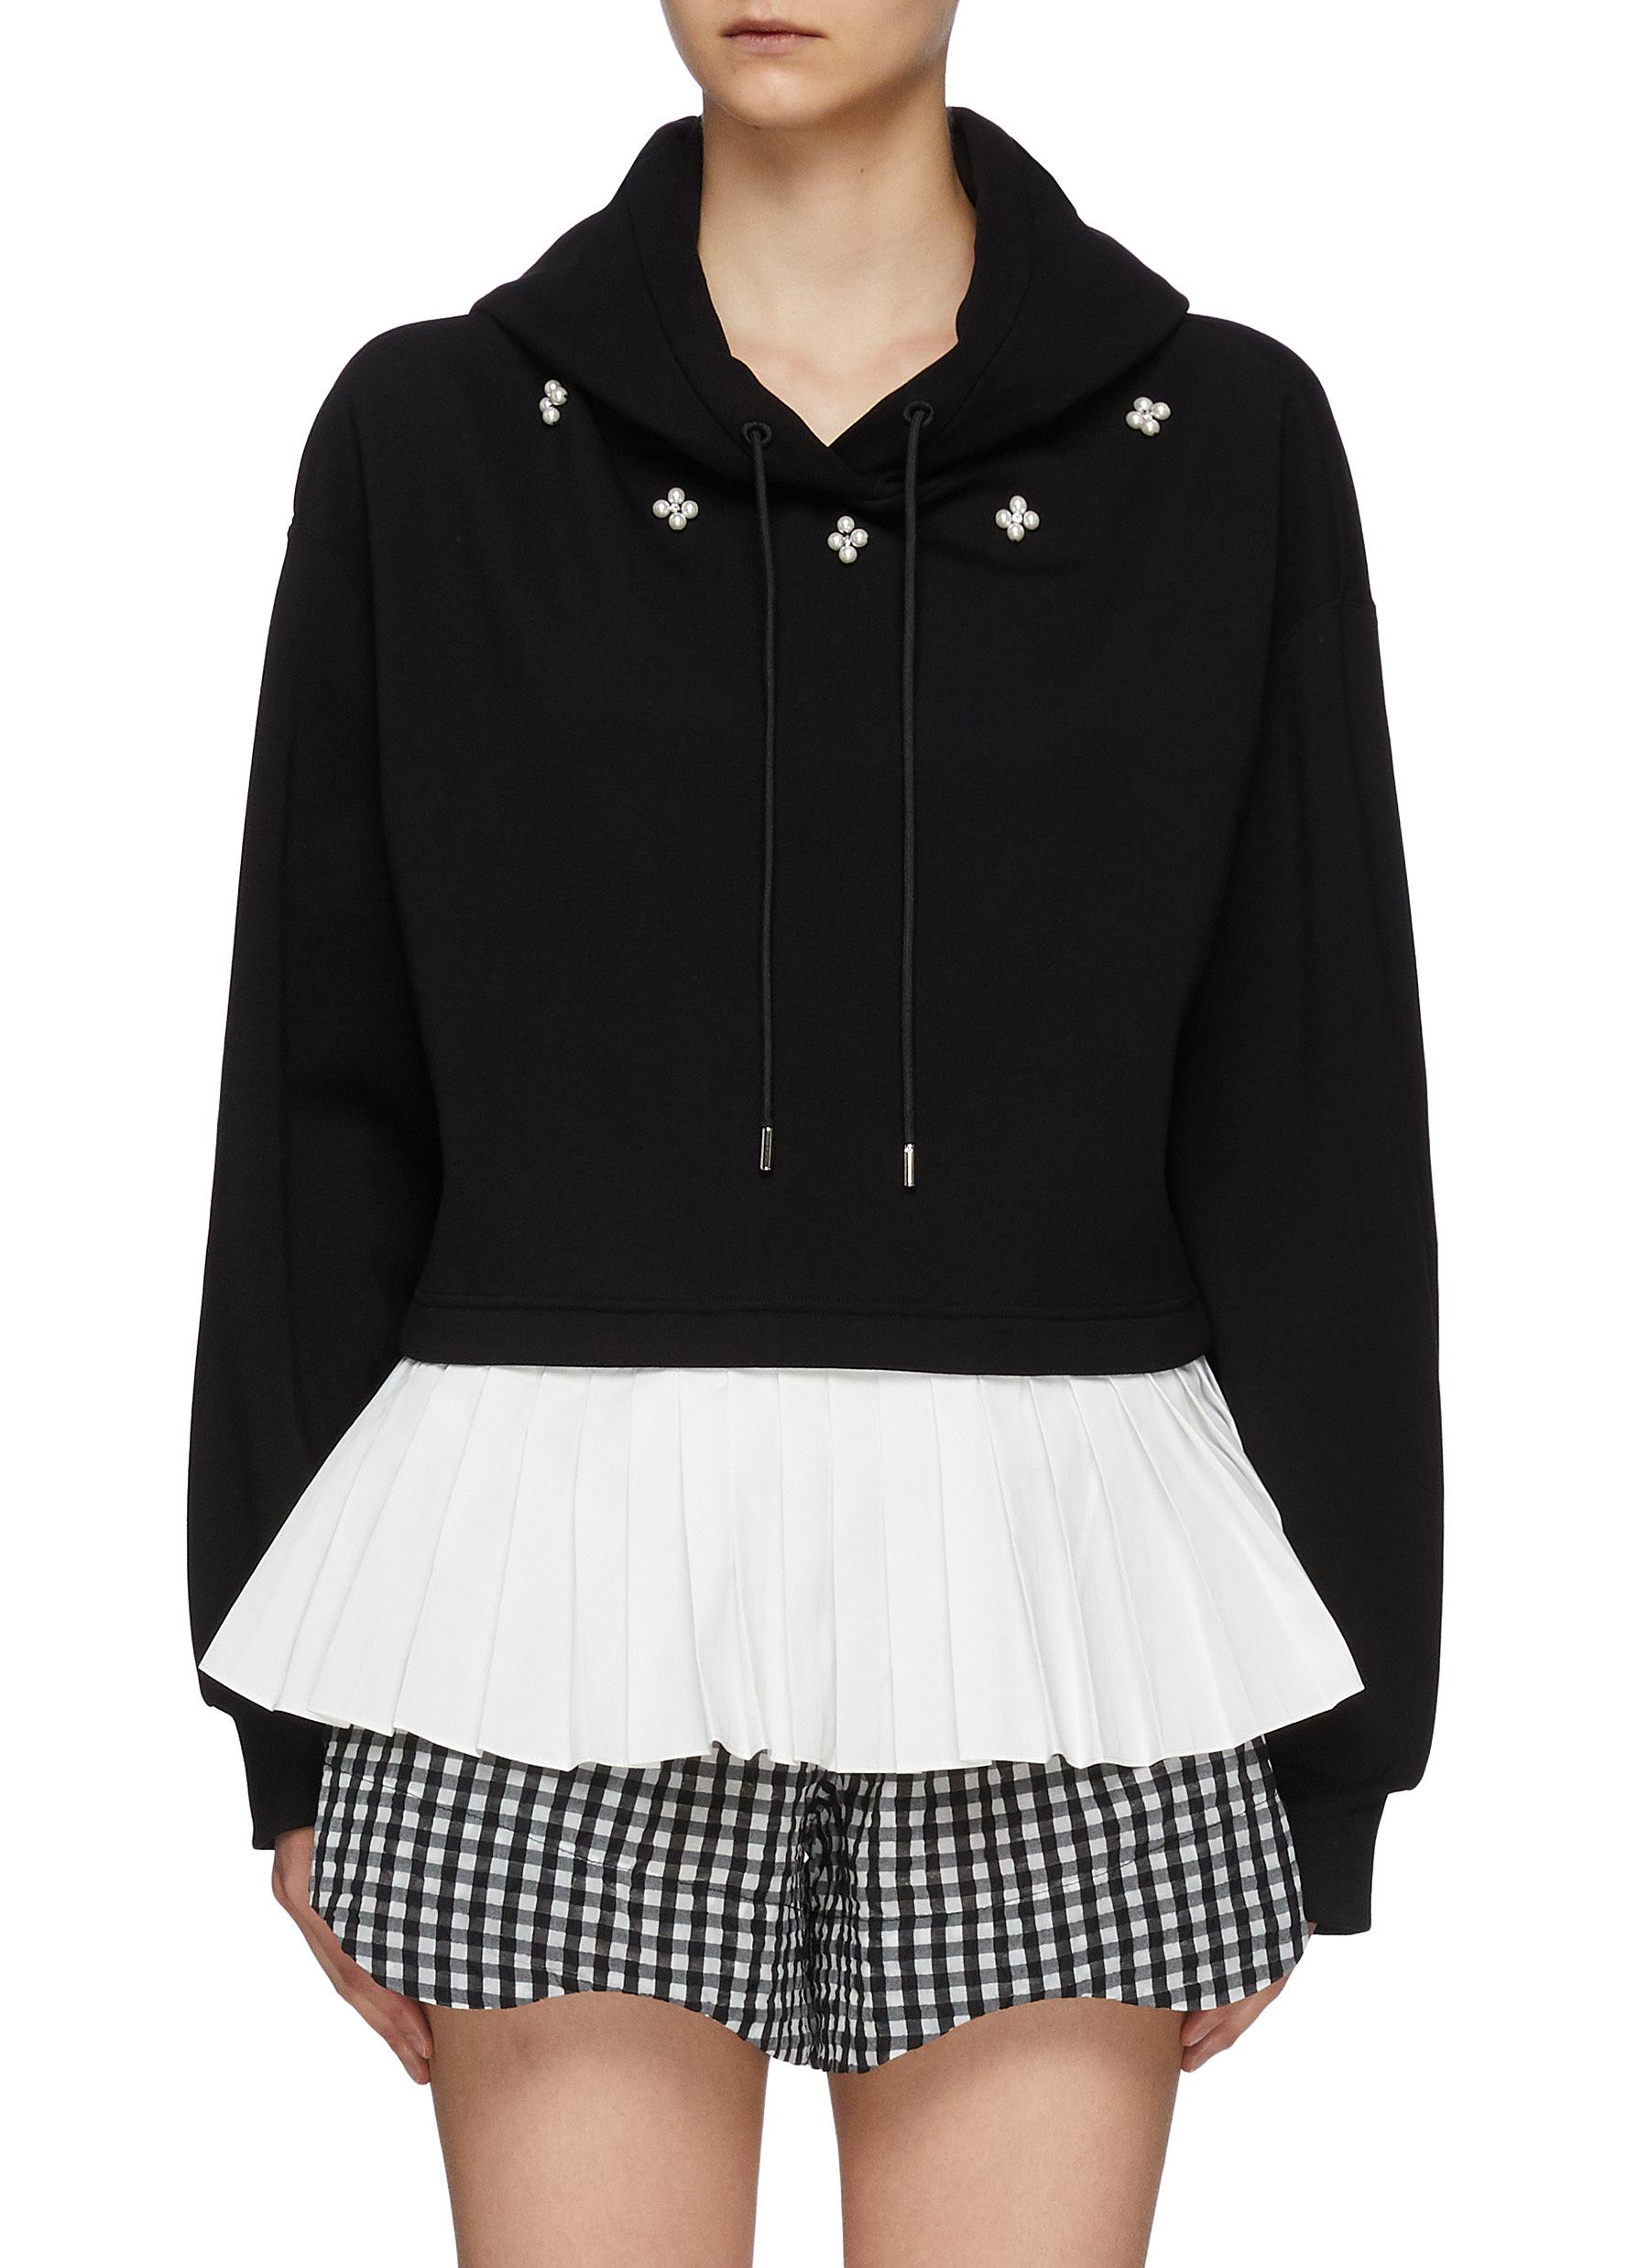 Pearl Appliqued Cotton Blend Drawstring Hoodie With Contrasting Pleated Hem